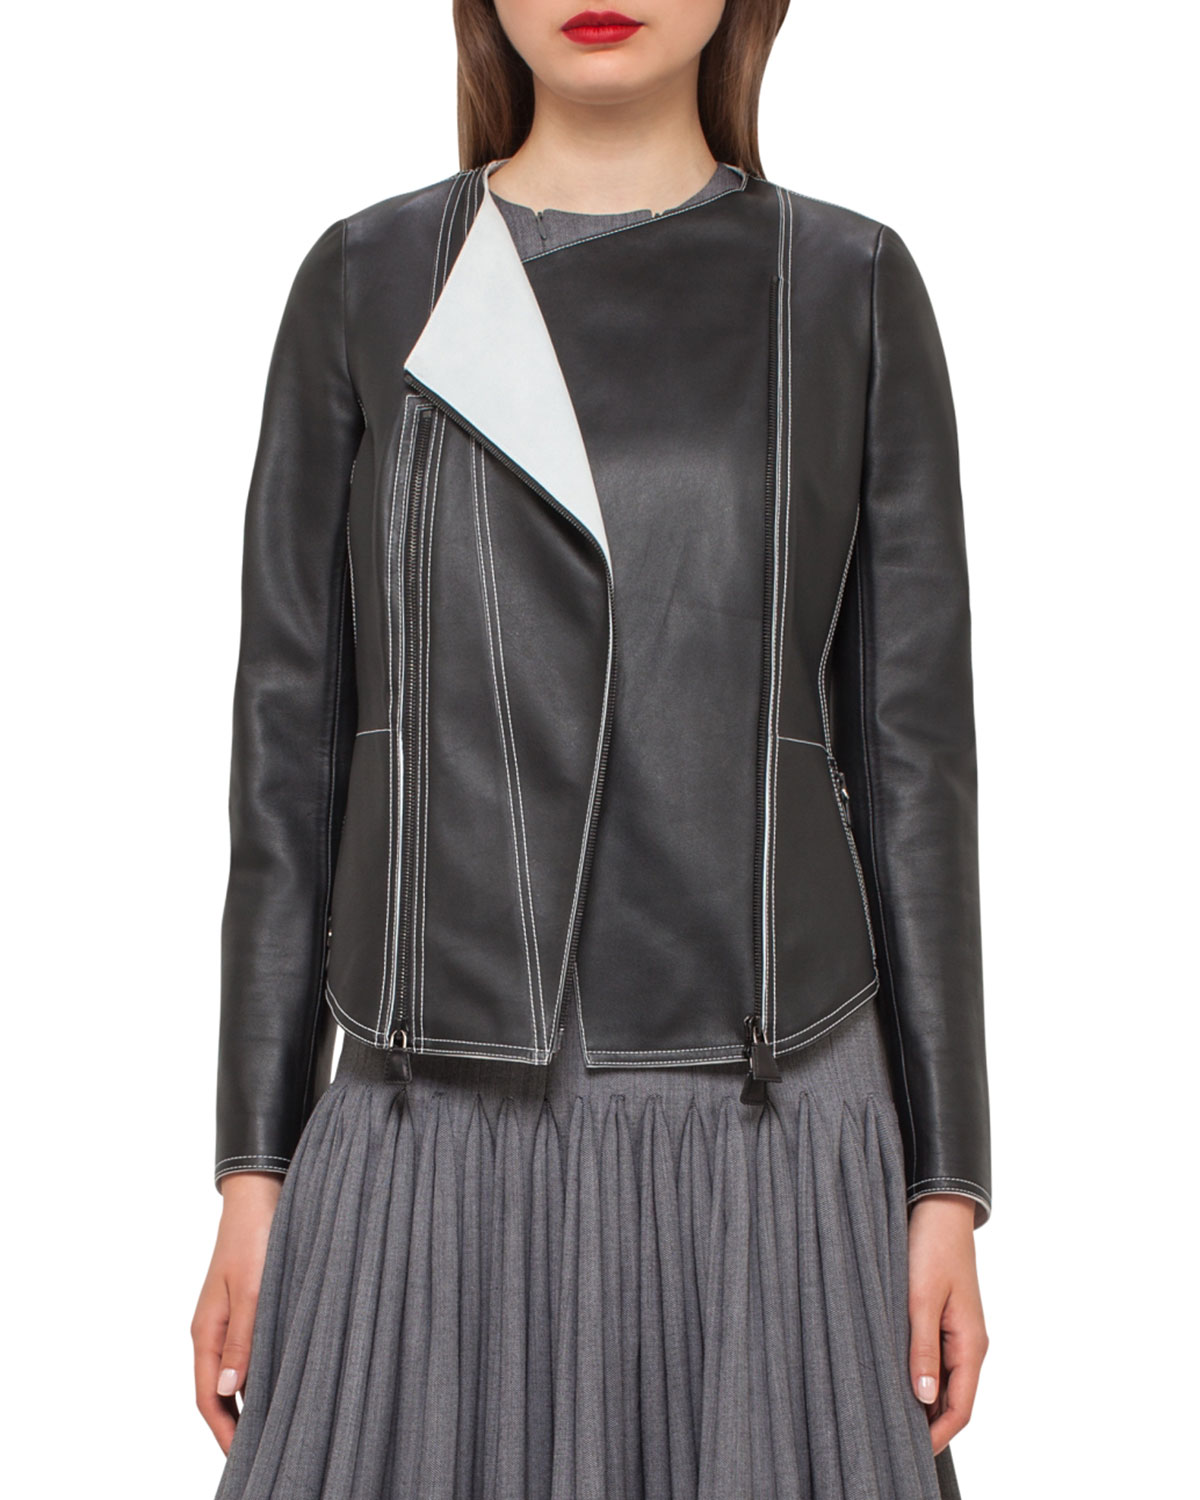 Akris Tailored Leather Jacket Discount With Paypal Get Authentic Online Perfect Cheap Online NGNJihcLc